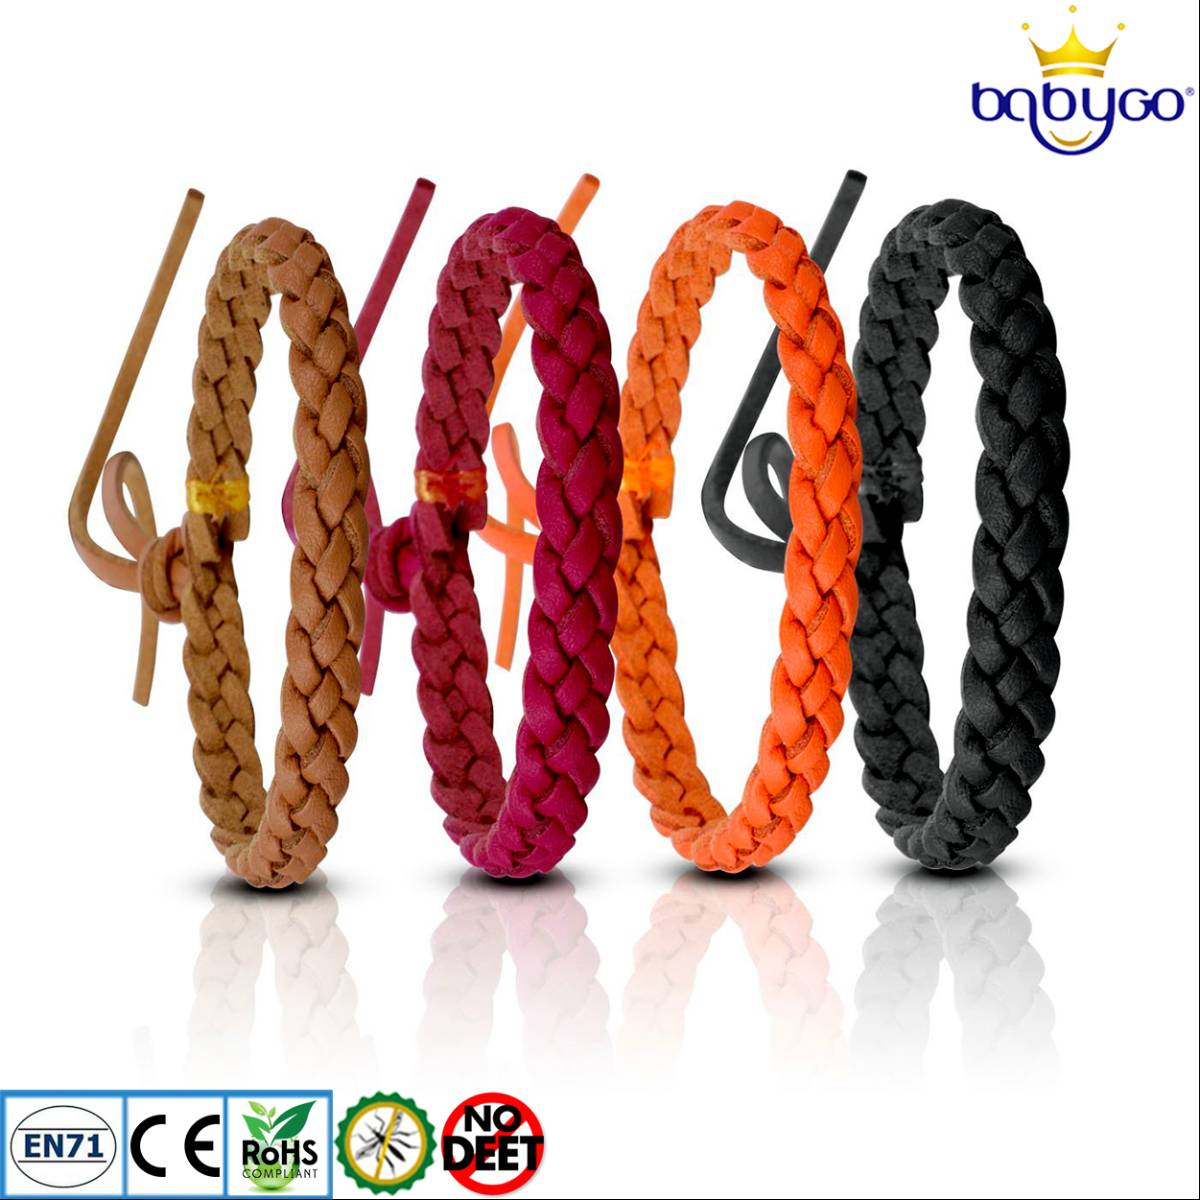 Babygo Leather Mosquito Repellent Bracelet (gelang Anti Nyamuk Kulit)